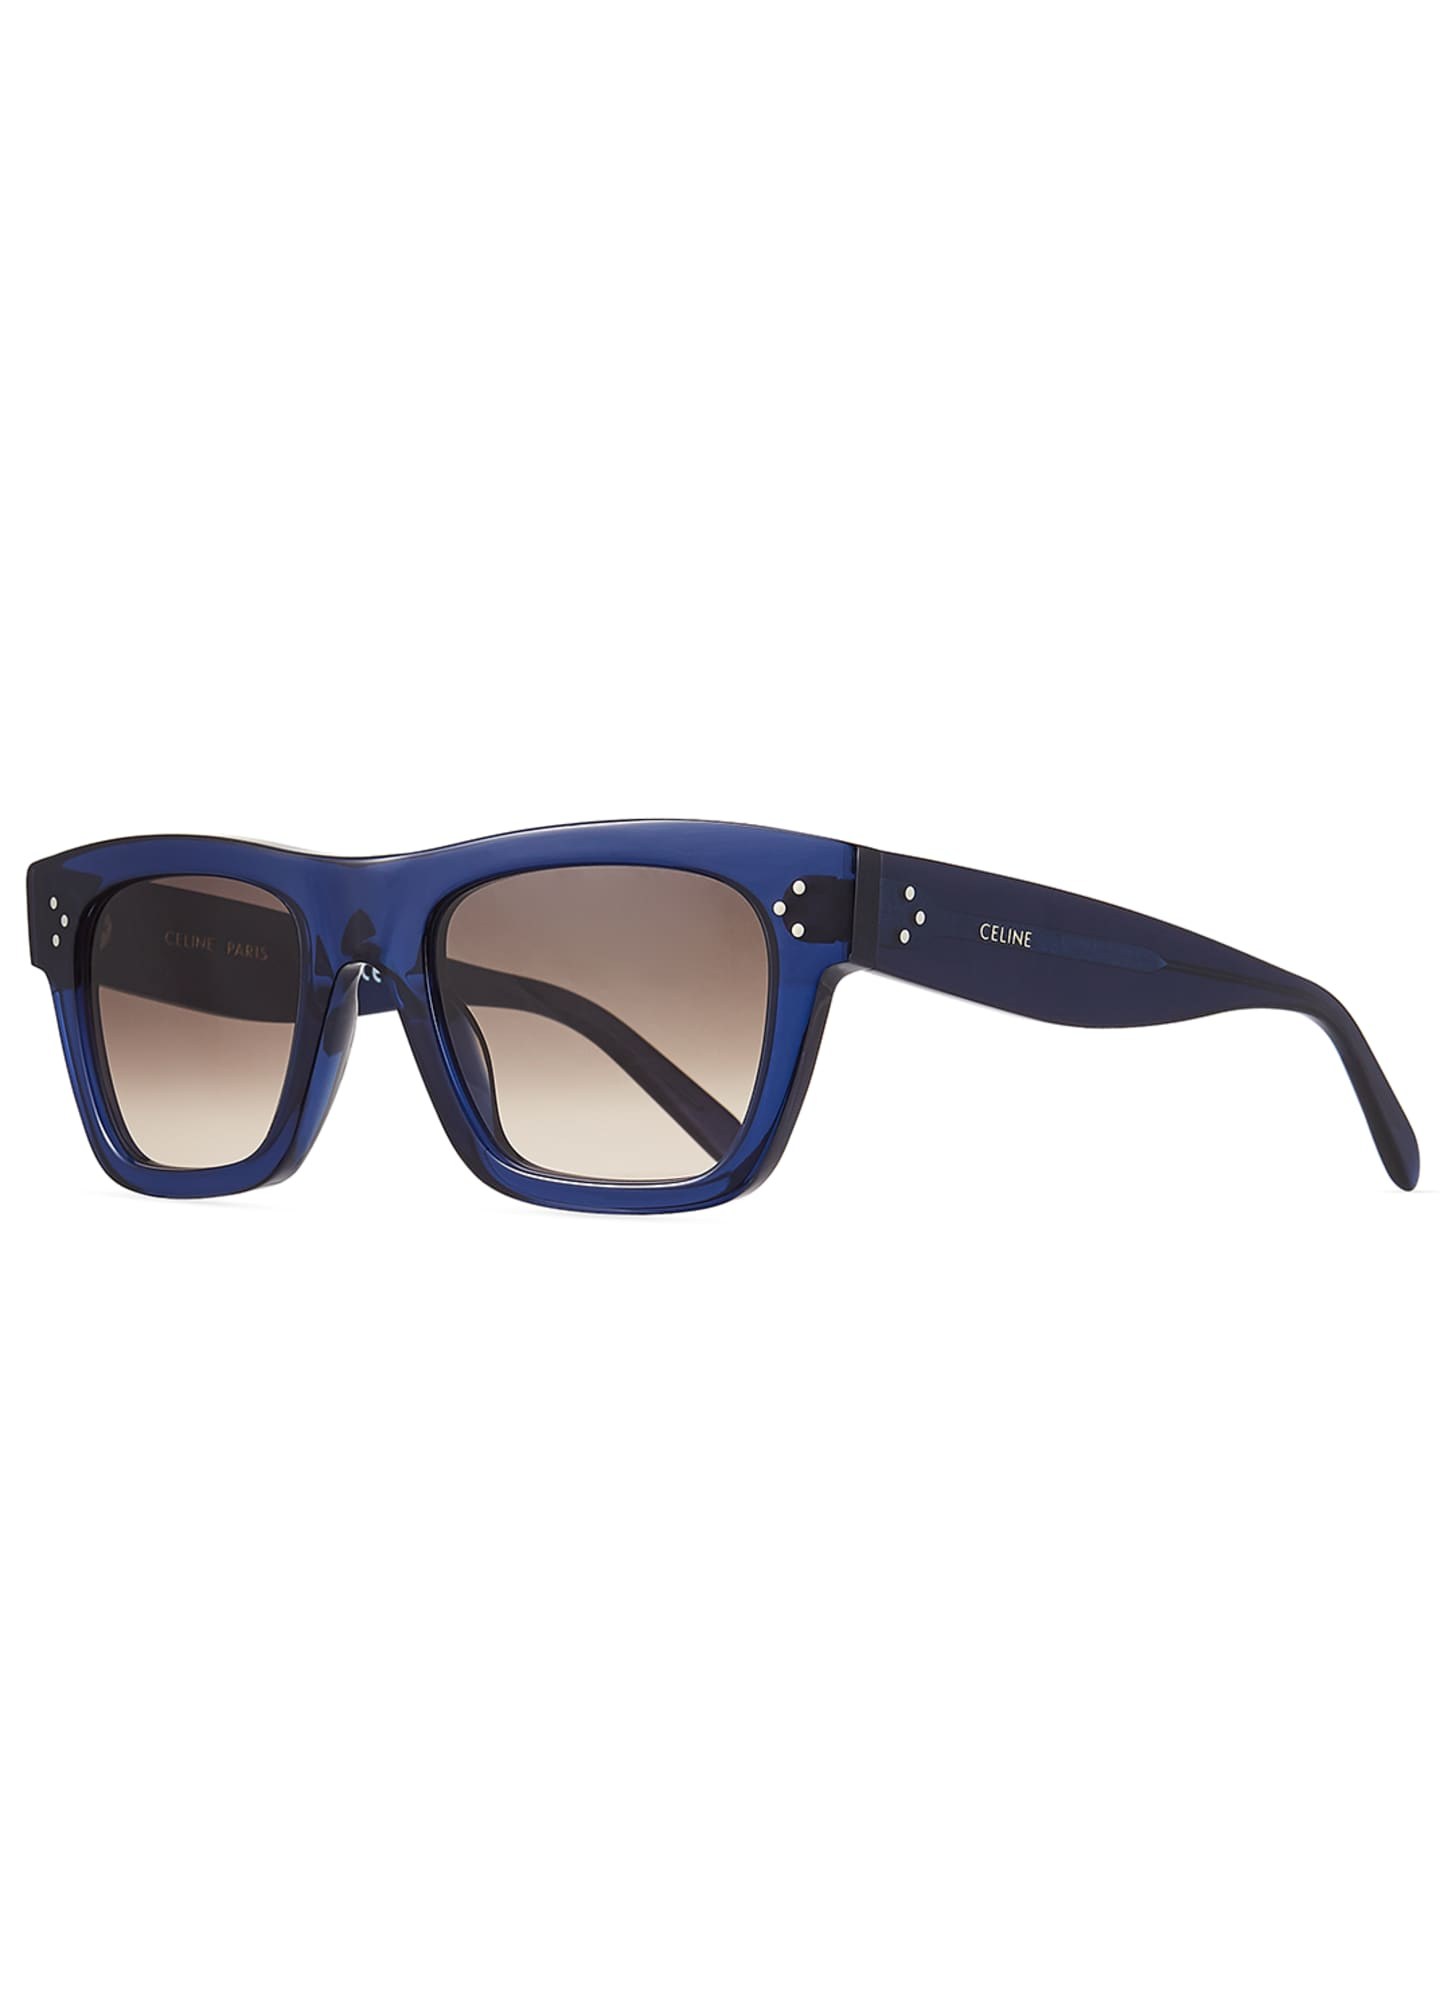 Celine Men's Rectangular Acetate Sunglasses, Blue